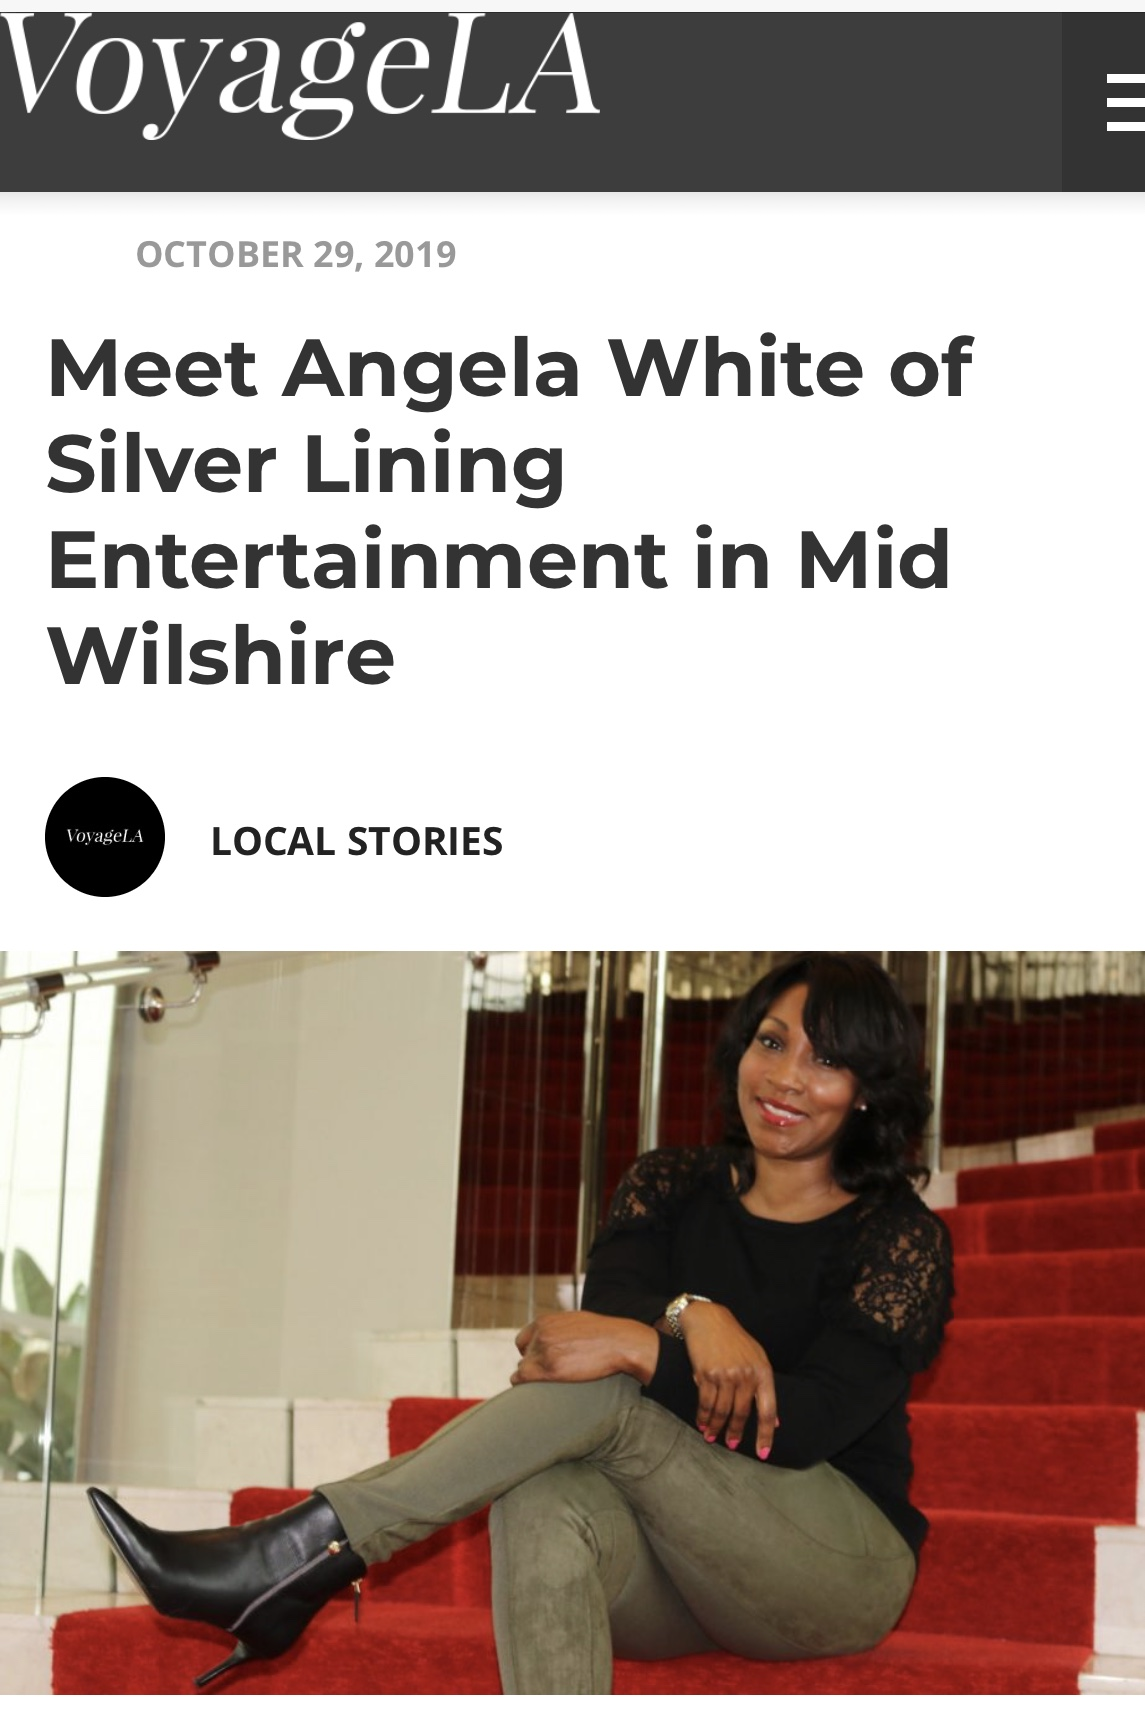 Voyage LA Film Producer Angela White of Silver Lining Entertainment in Mid Wilshire